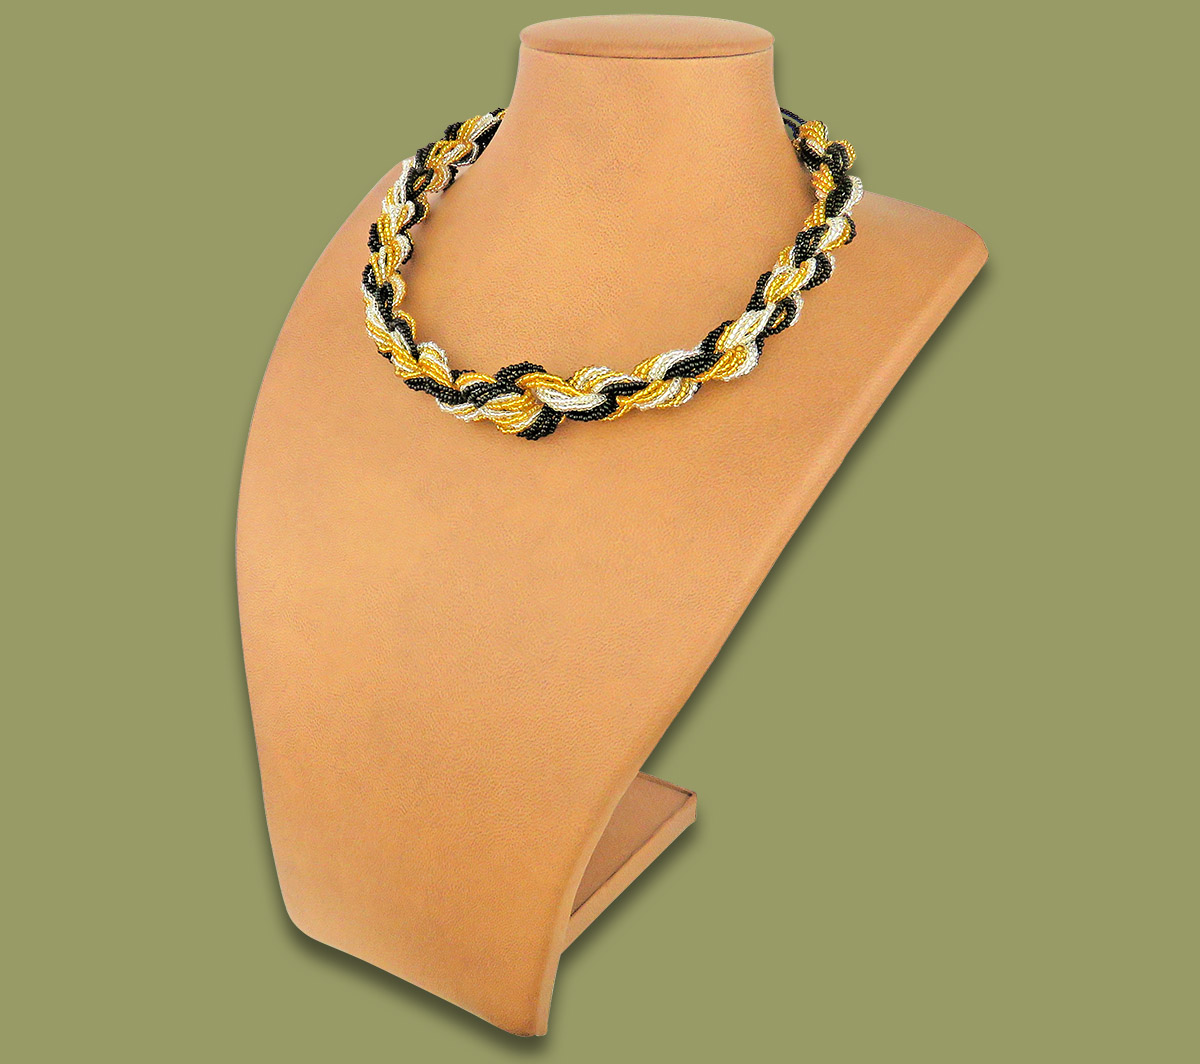 African Beaded Necklace Khanyo Gold Silver Black